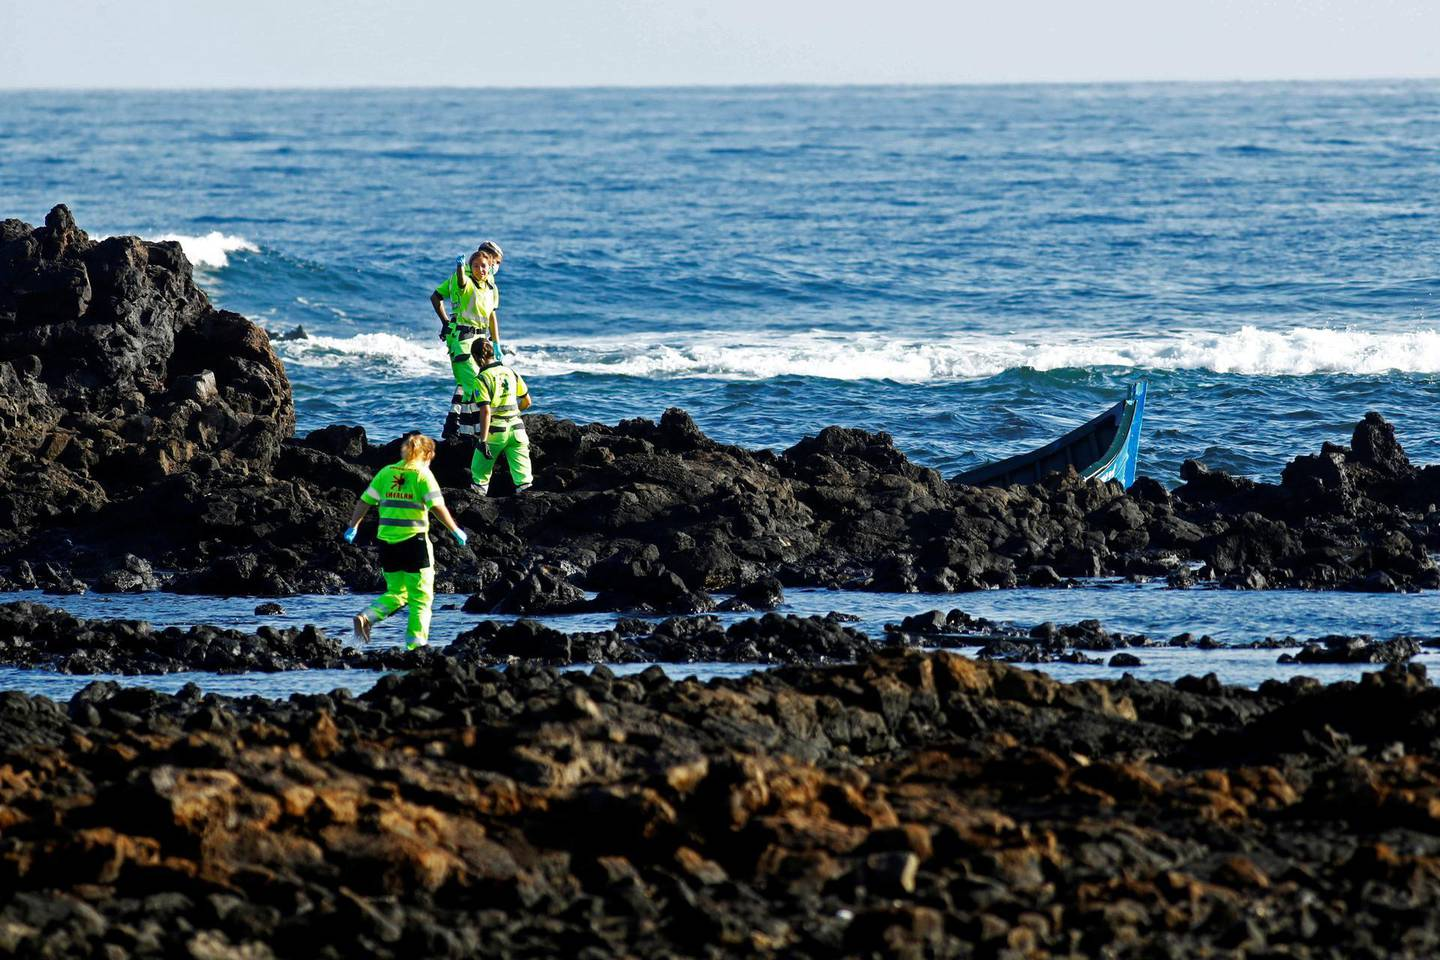 Rescue workers search for bodies after a boat with 35 migrants from the Maghreb region capsized in the beach of Orzola, in the Canary Island of Lanzarote, Spain November 25, 2020. REUTERS/Borja Suarez